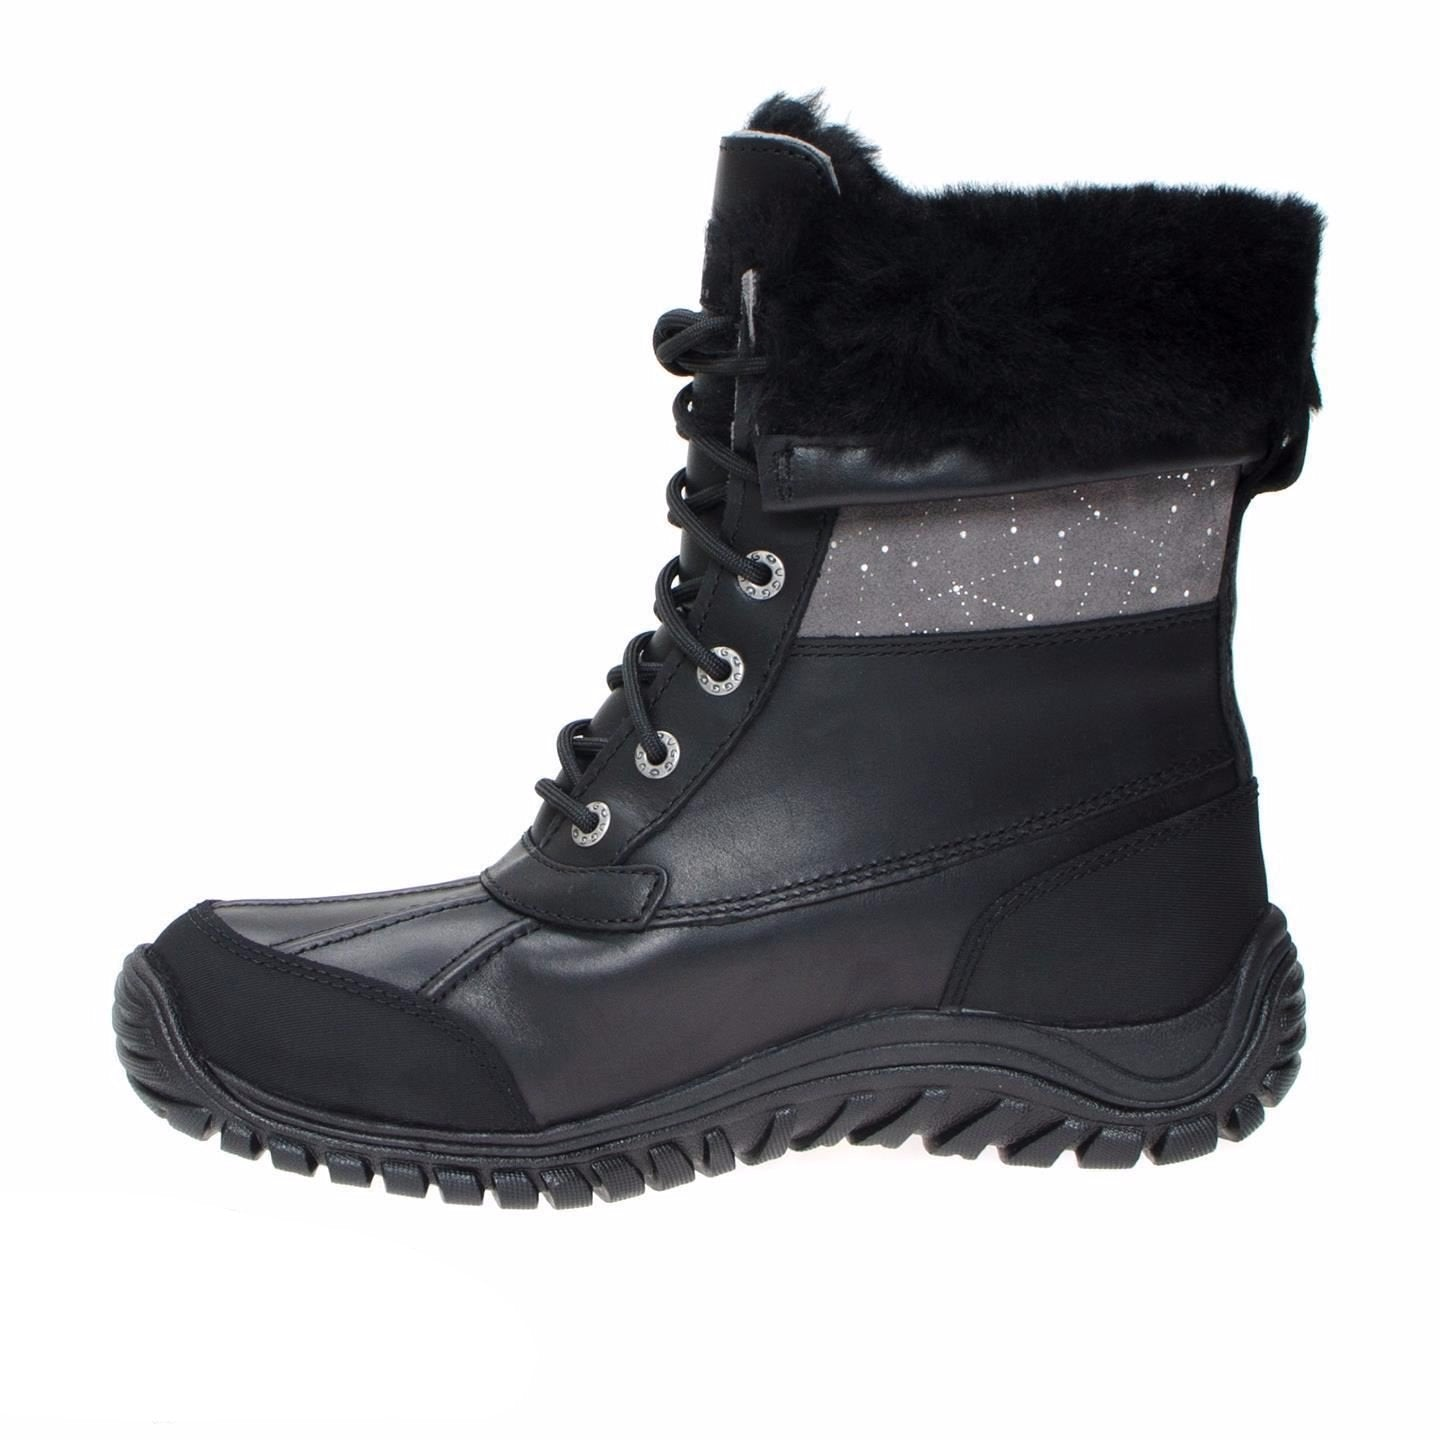 UGG Adirondack Constellation Black Boots